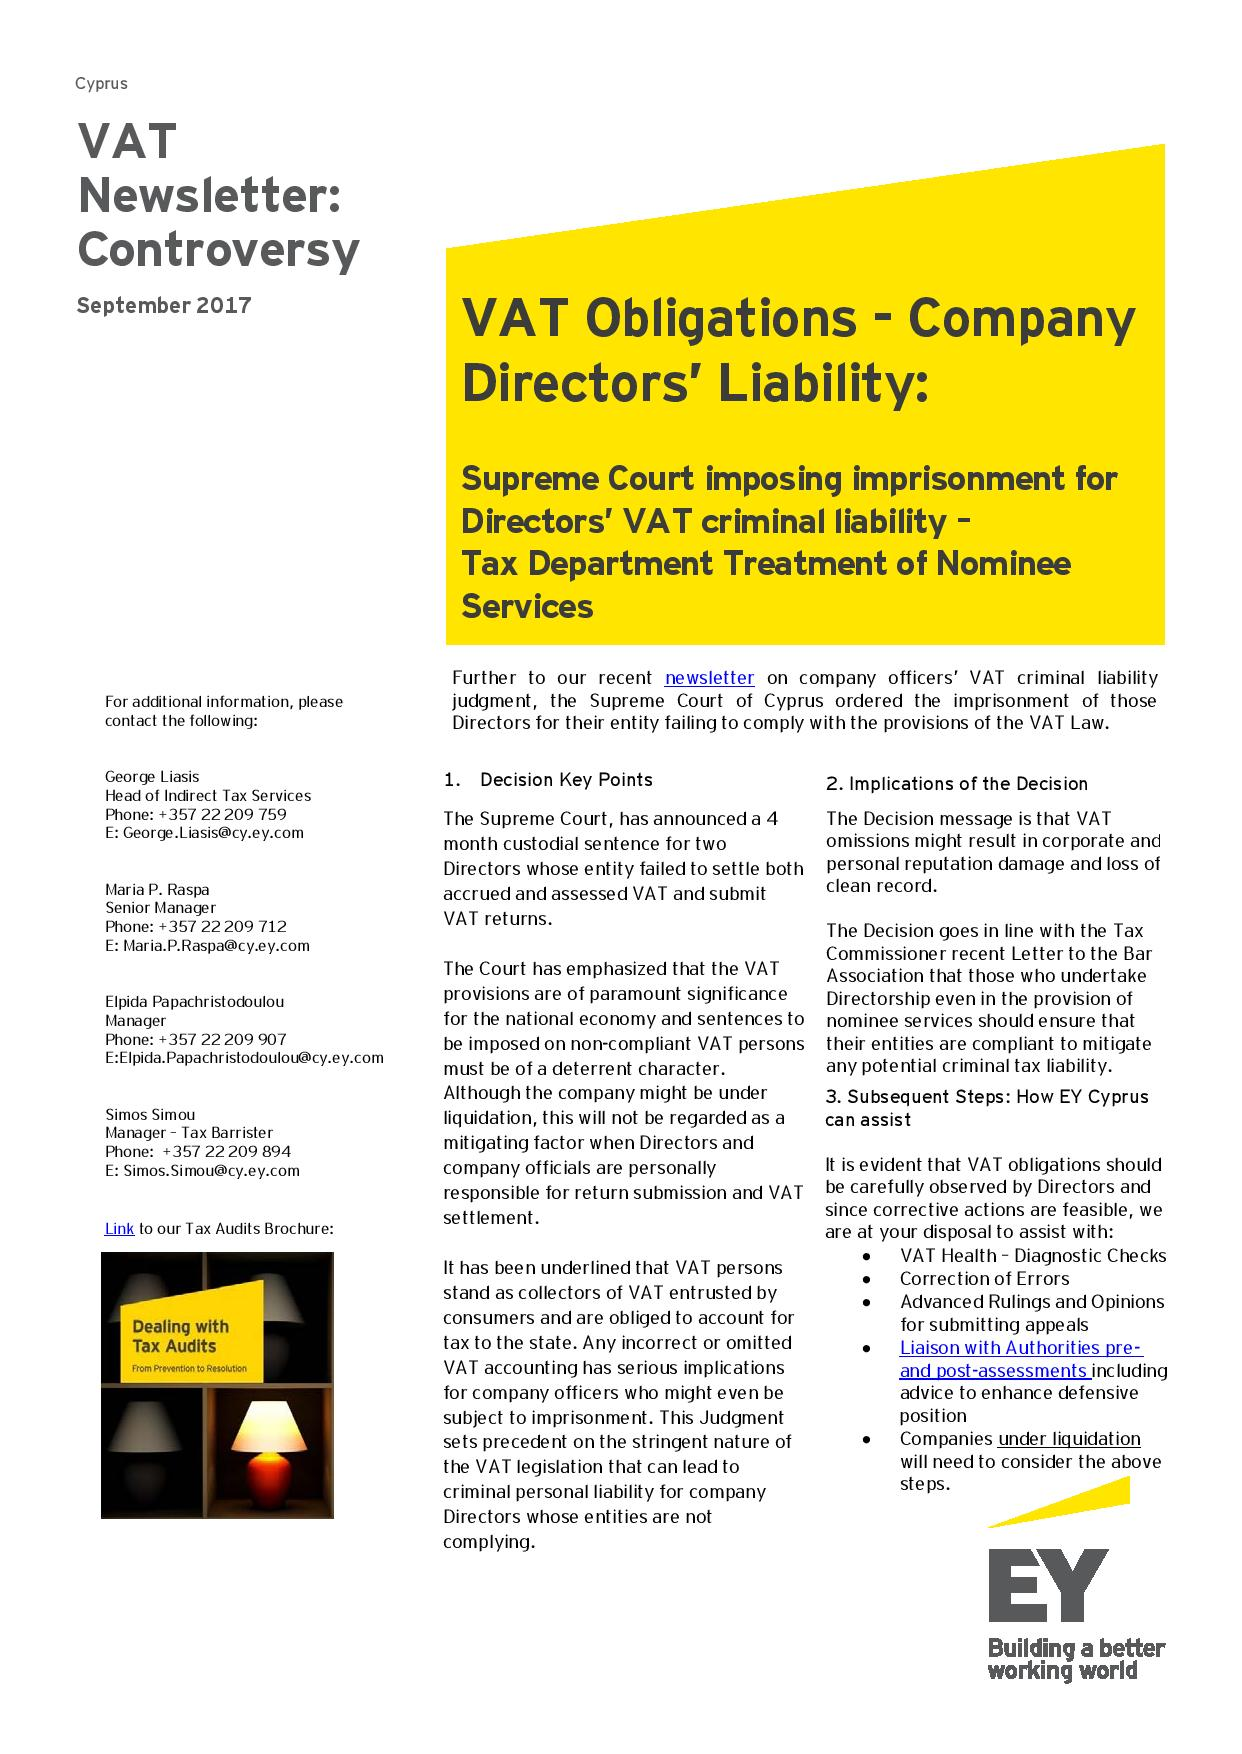 EY Tax Newsletter September 2017